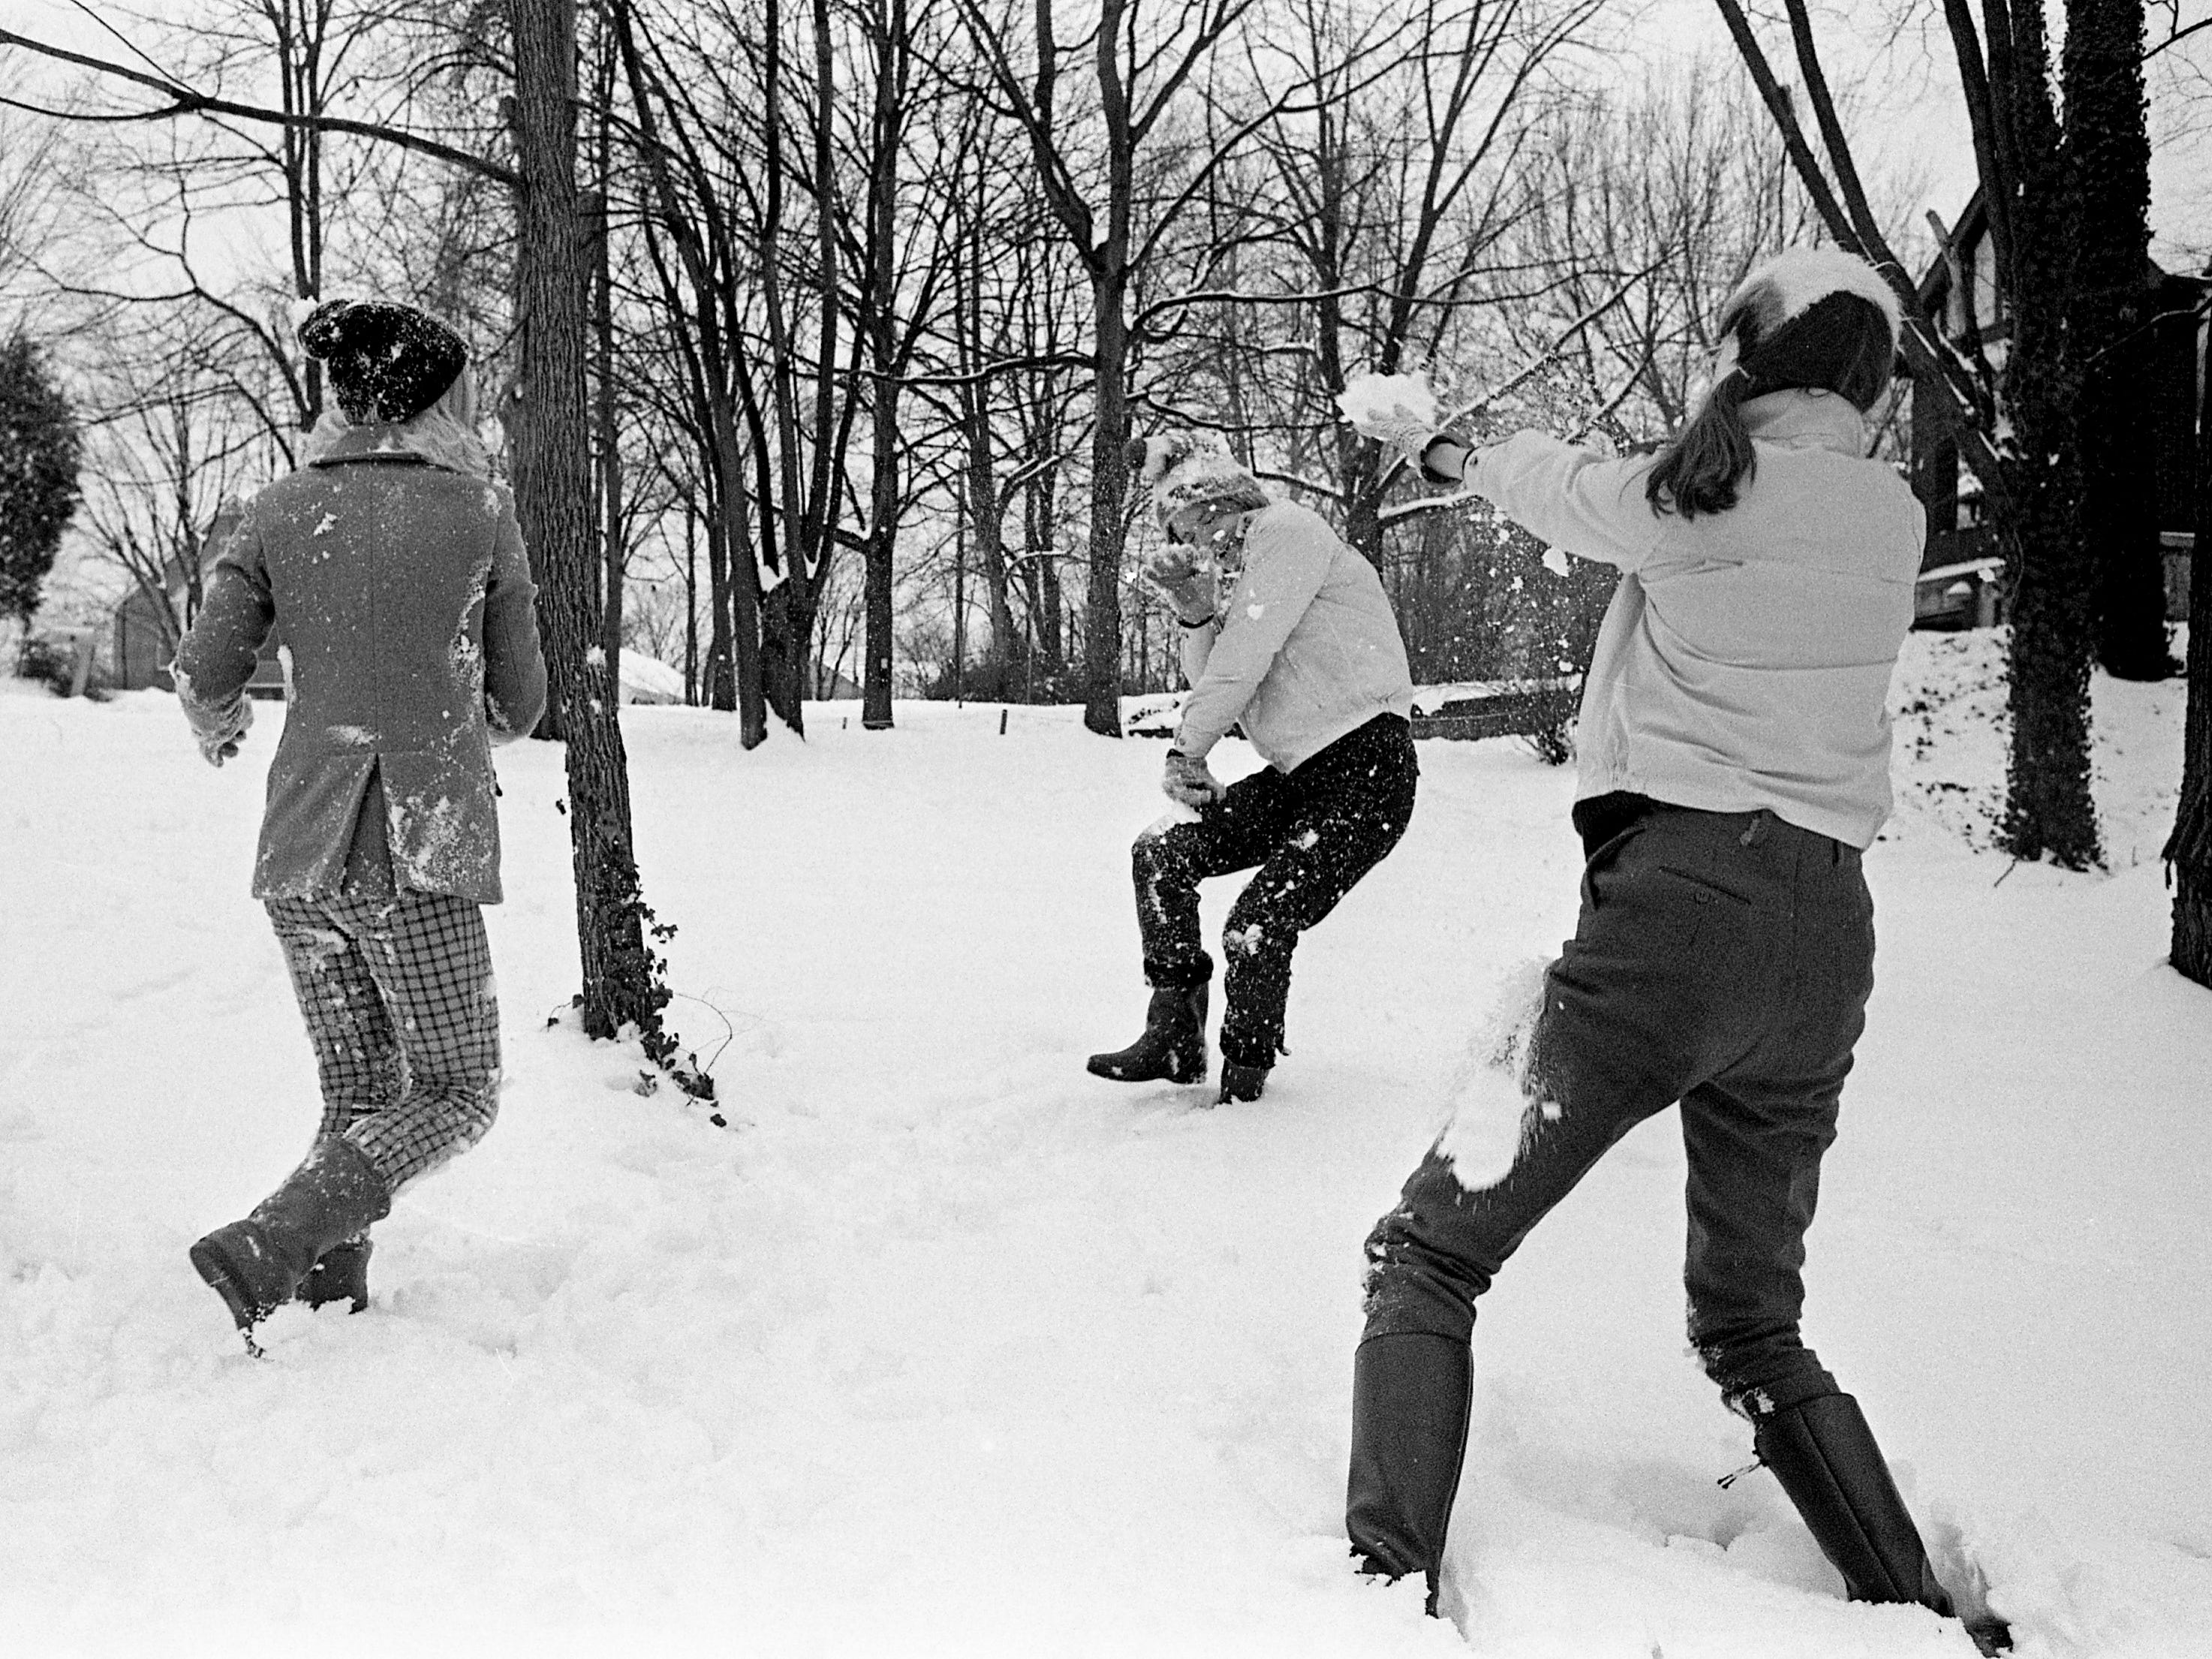 Three Hillsboro High School students, getting the school day off, find Nashville's first snow of winter ideal for a snowball battle Jan. 27, 1969. Mary, left, and Marty Hanserd of Hillmont Drive and Susan Snell of Granny White Pike let the snowballs fly.